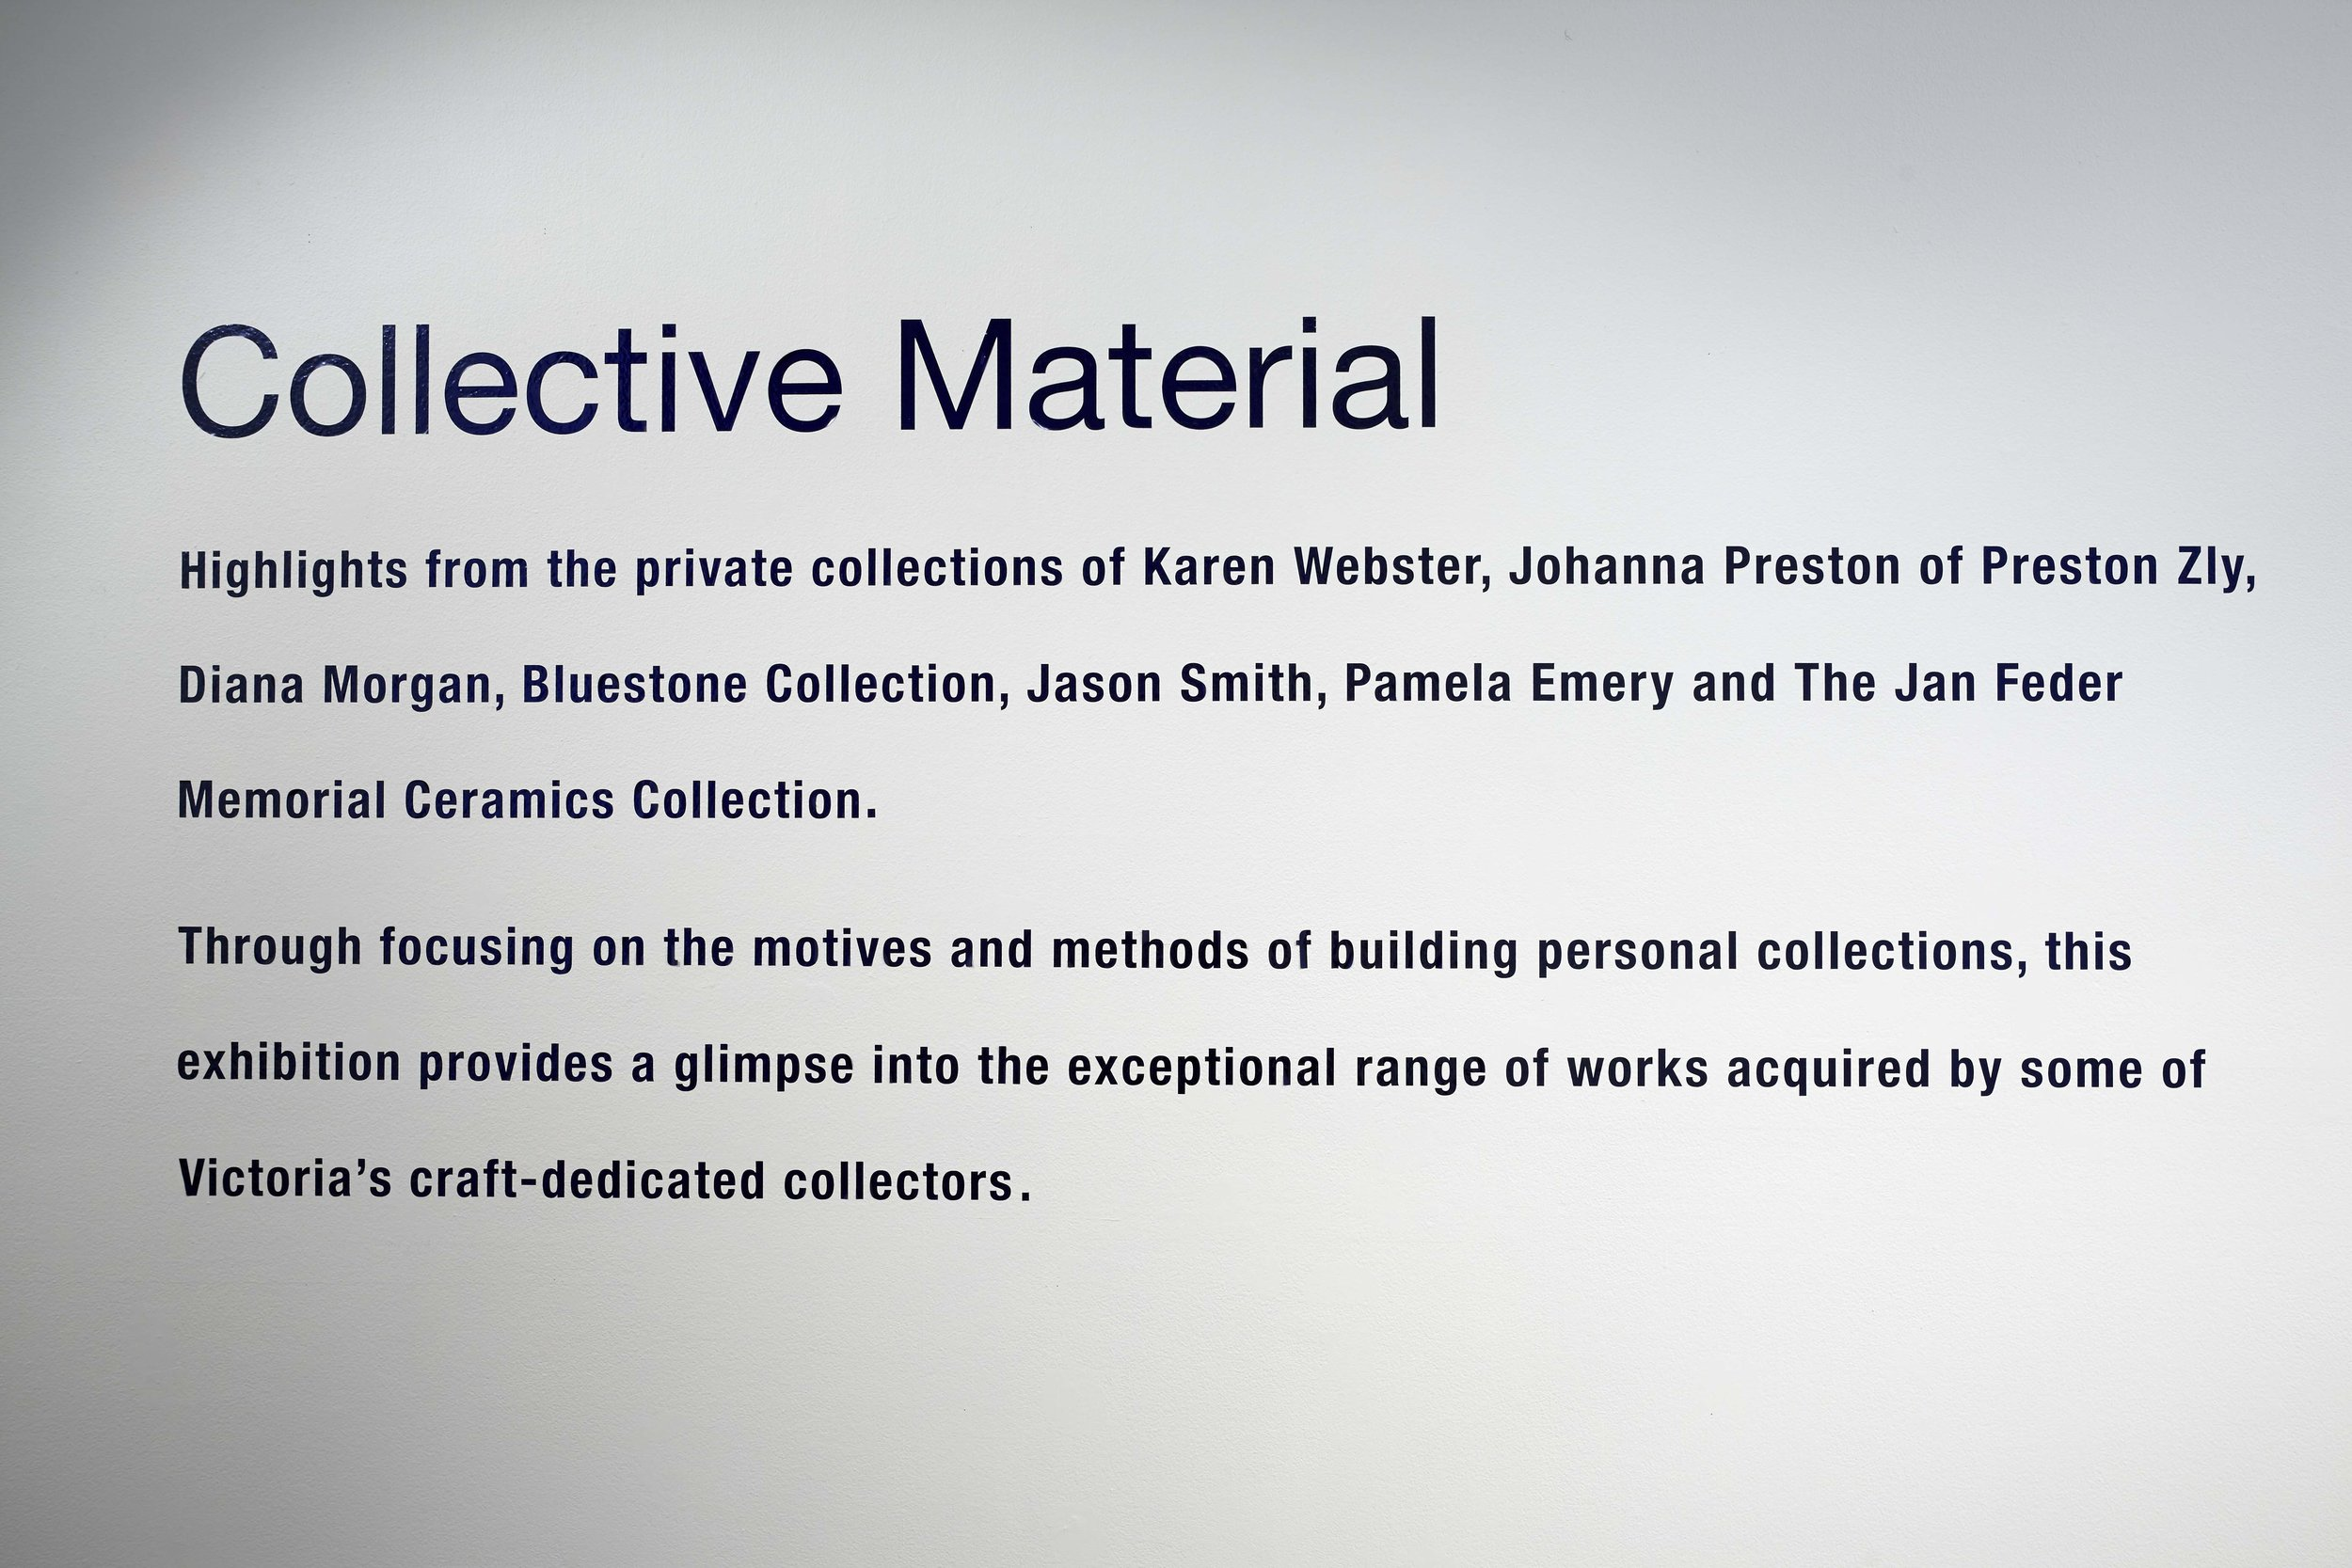 Collective Material Documentation0195.jpg